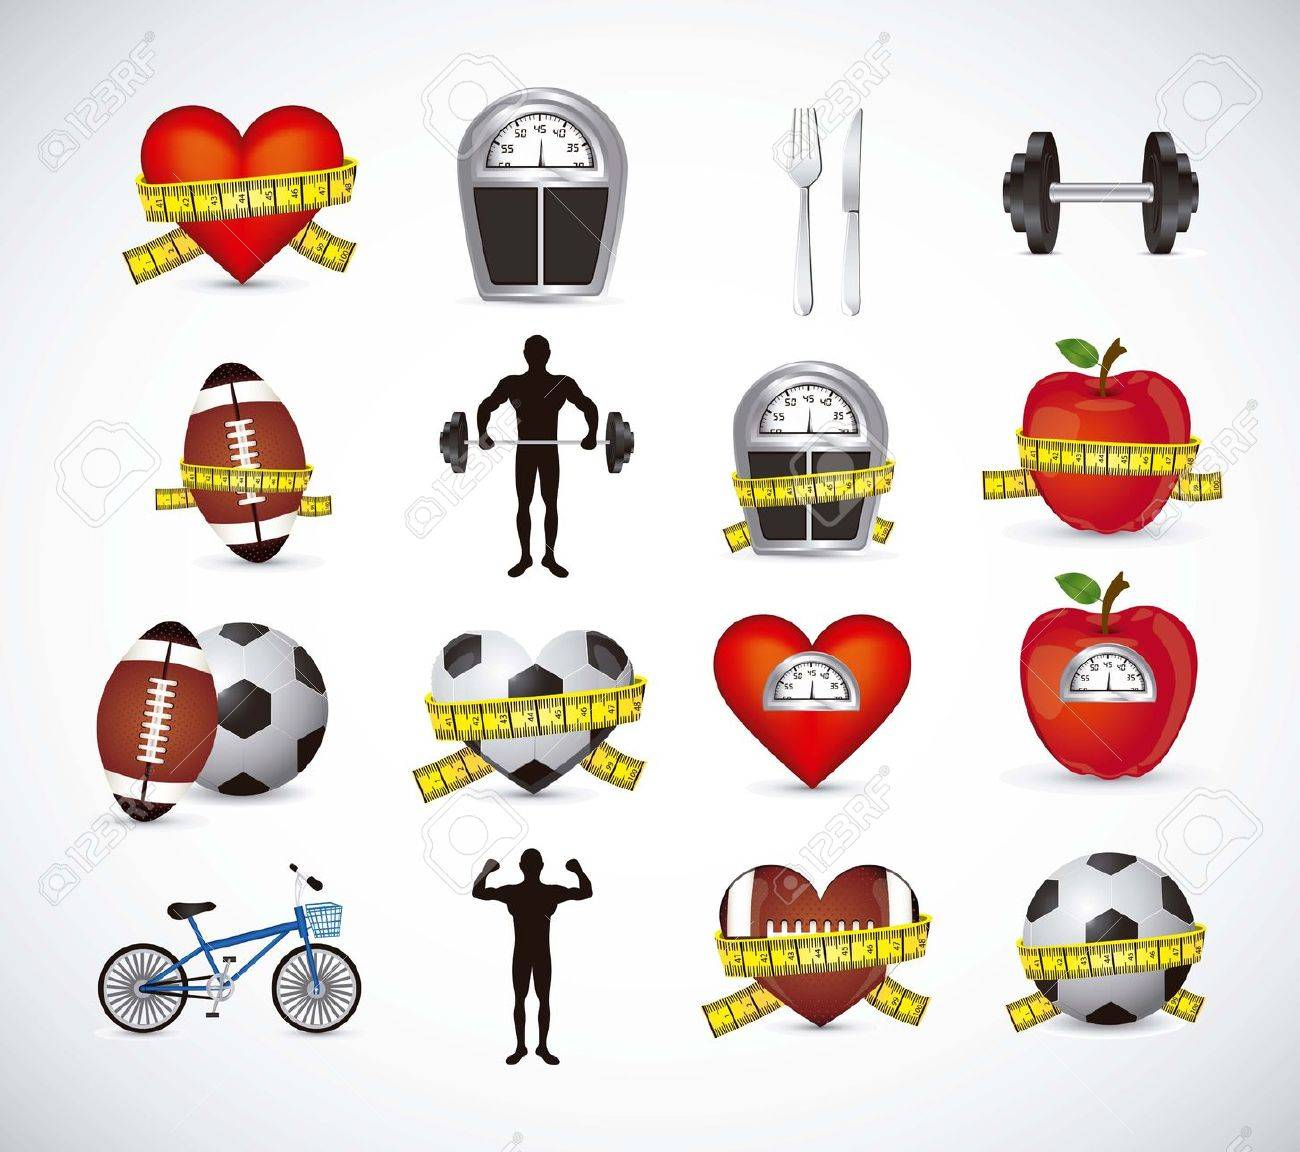 Illustration of Fitness Icons, sports and exercise, caring figure and health, vector illustration Stock Vector - 17787211